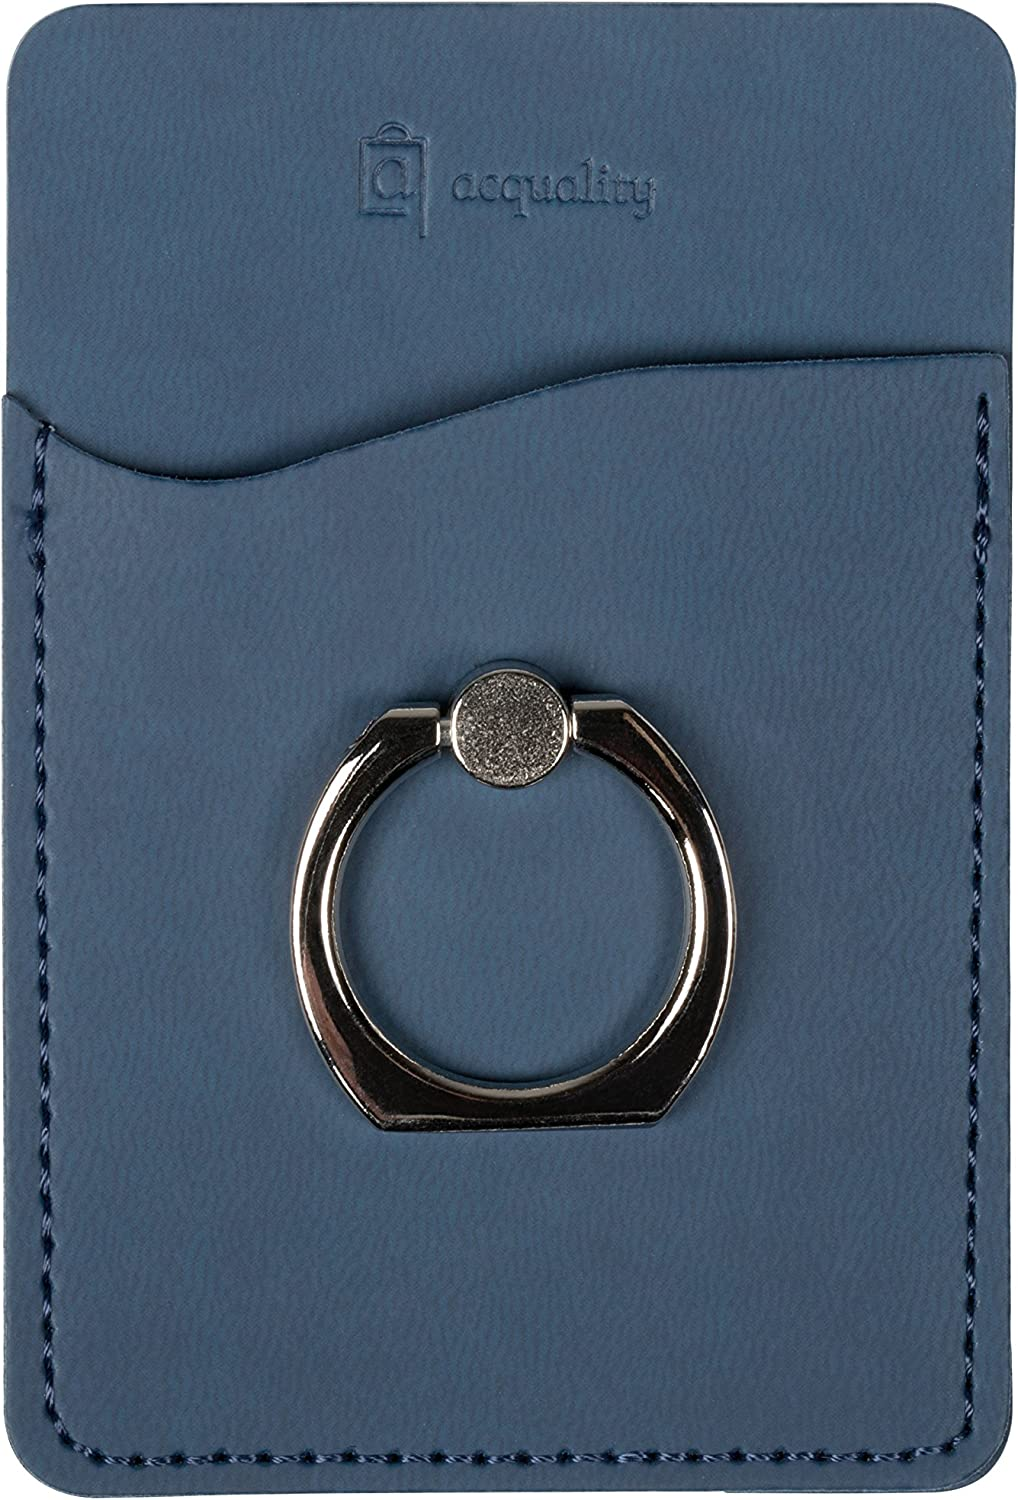 Acquality PU Leather Cell Phone Wallet/Pocket/Card Holder with Ring Stand for Mobile Devices, Adhesive Sticker Back (Blue)